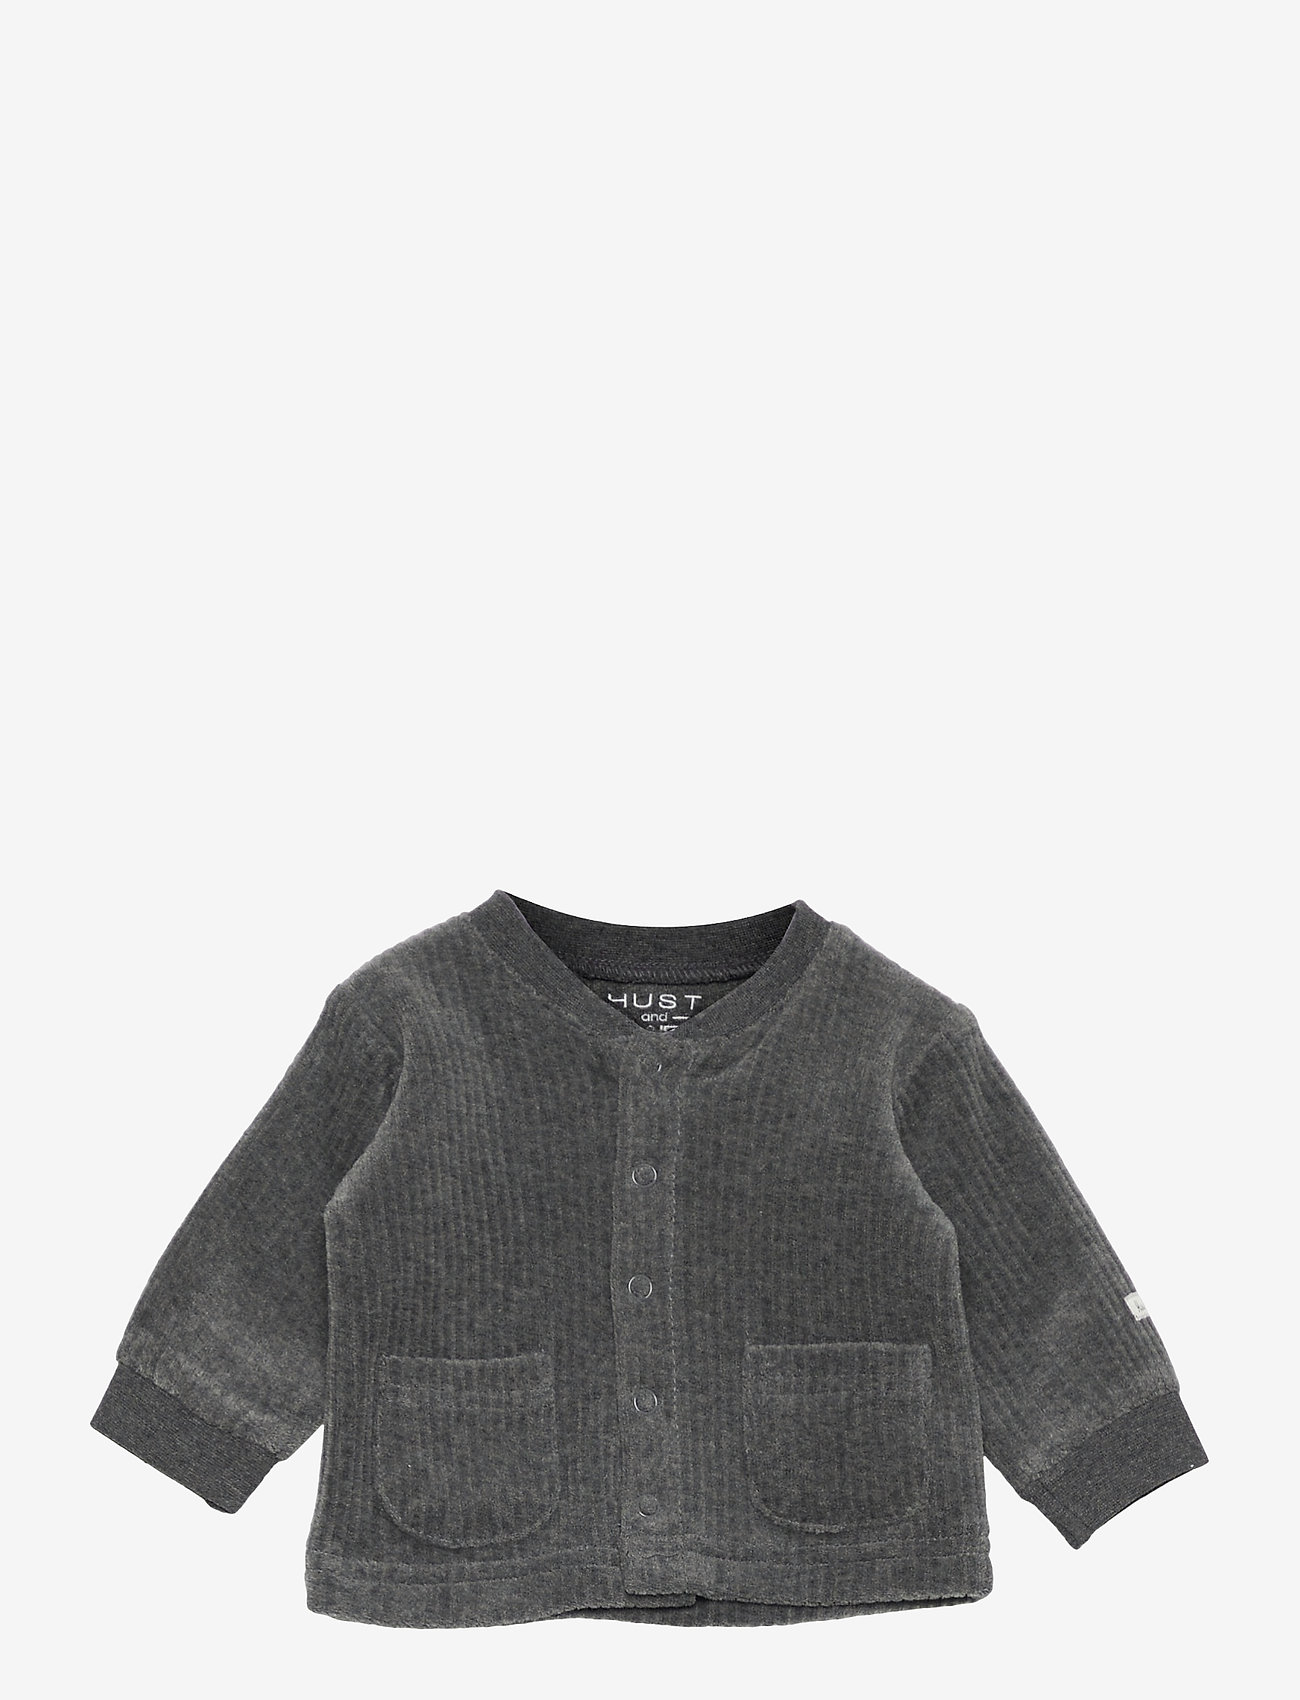 Hust & Claire - Casey - Cardigan - gilets - grey blend - 0